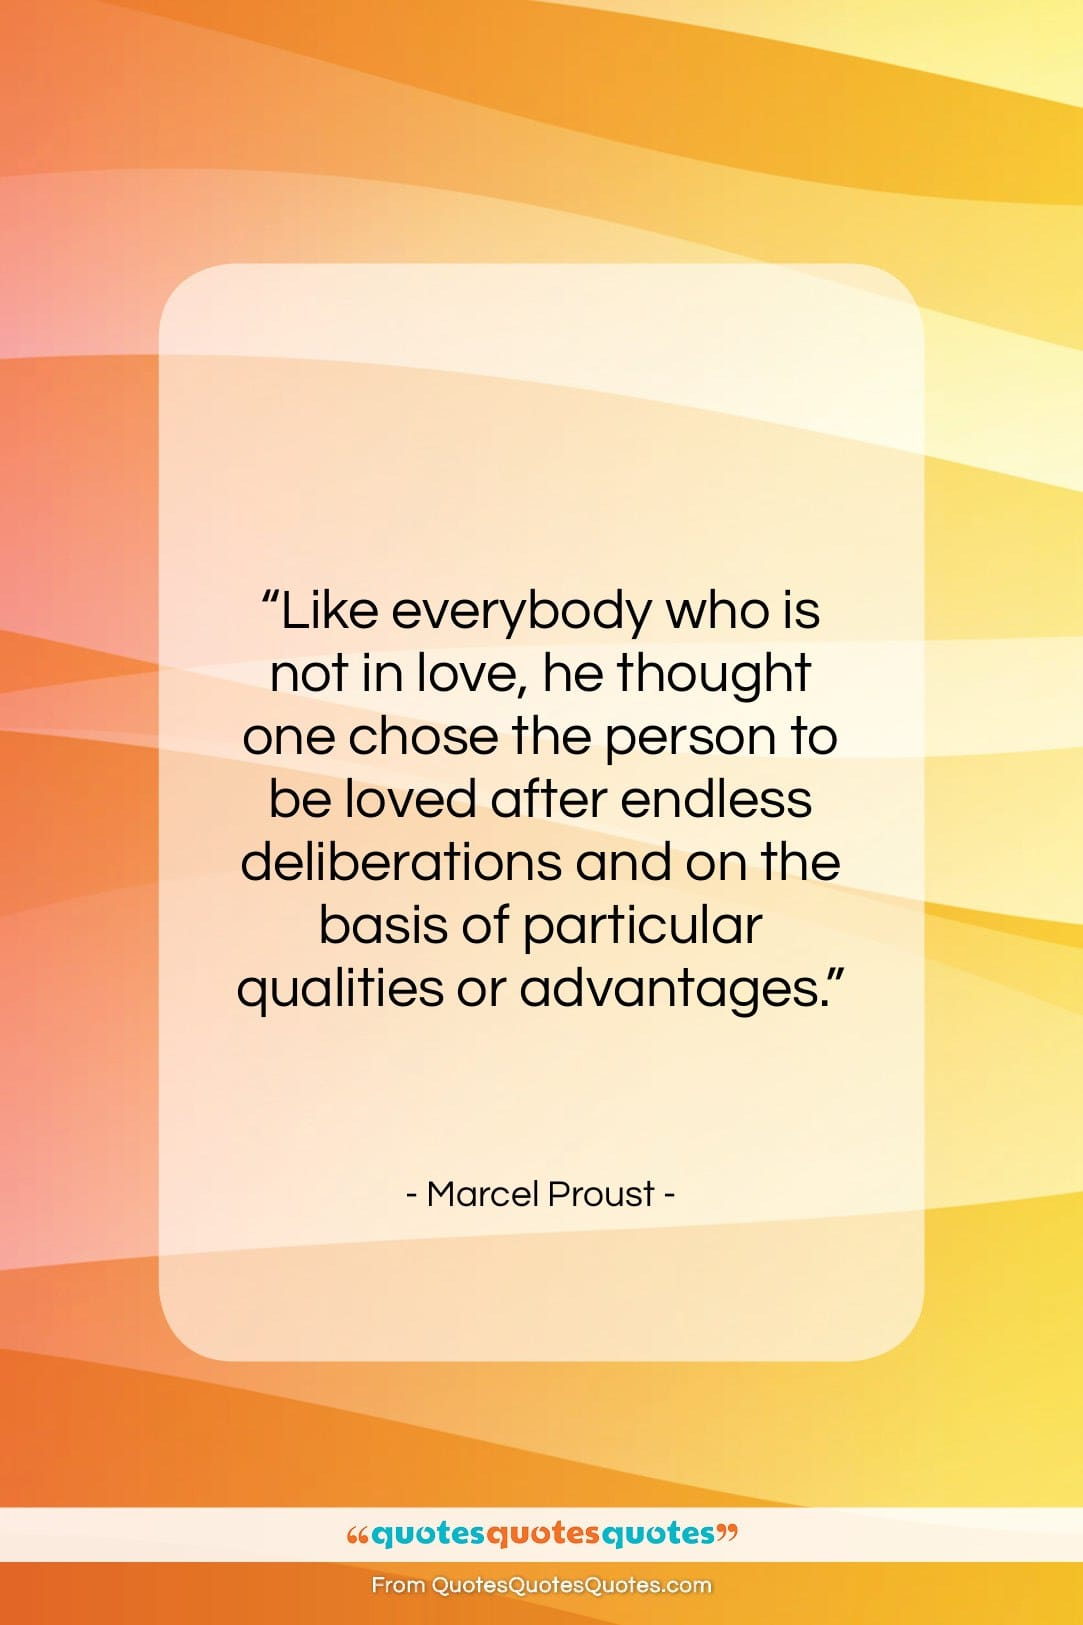 """Marcel Proust quote: """"Like everybody who is not in love,…""""- at QuotesQuotesQuotes.com"""